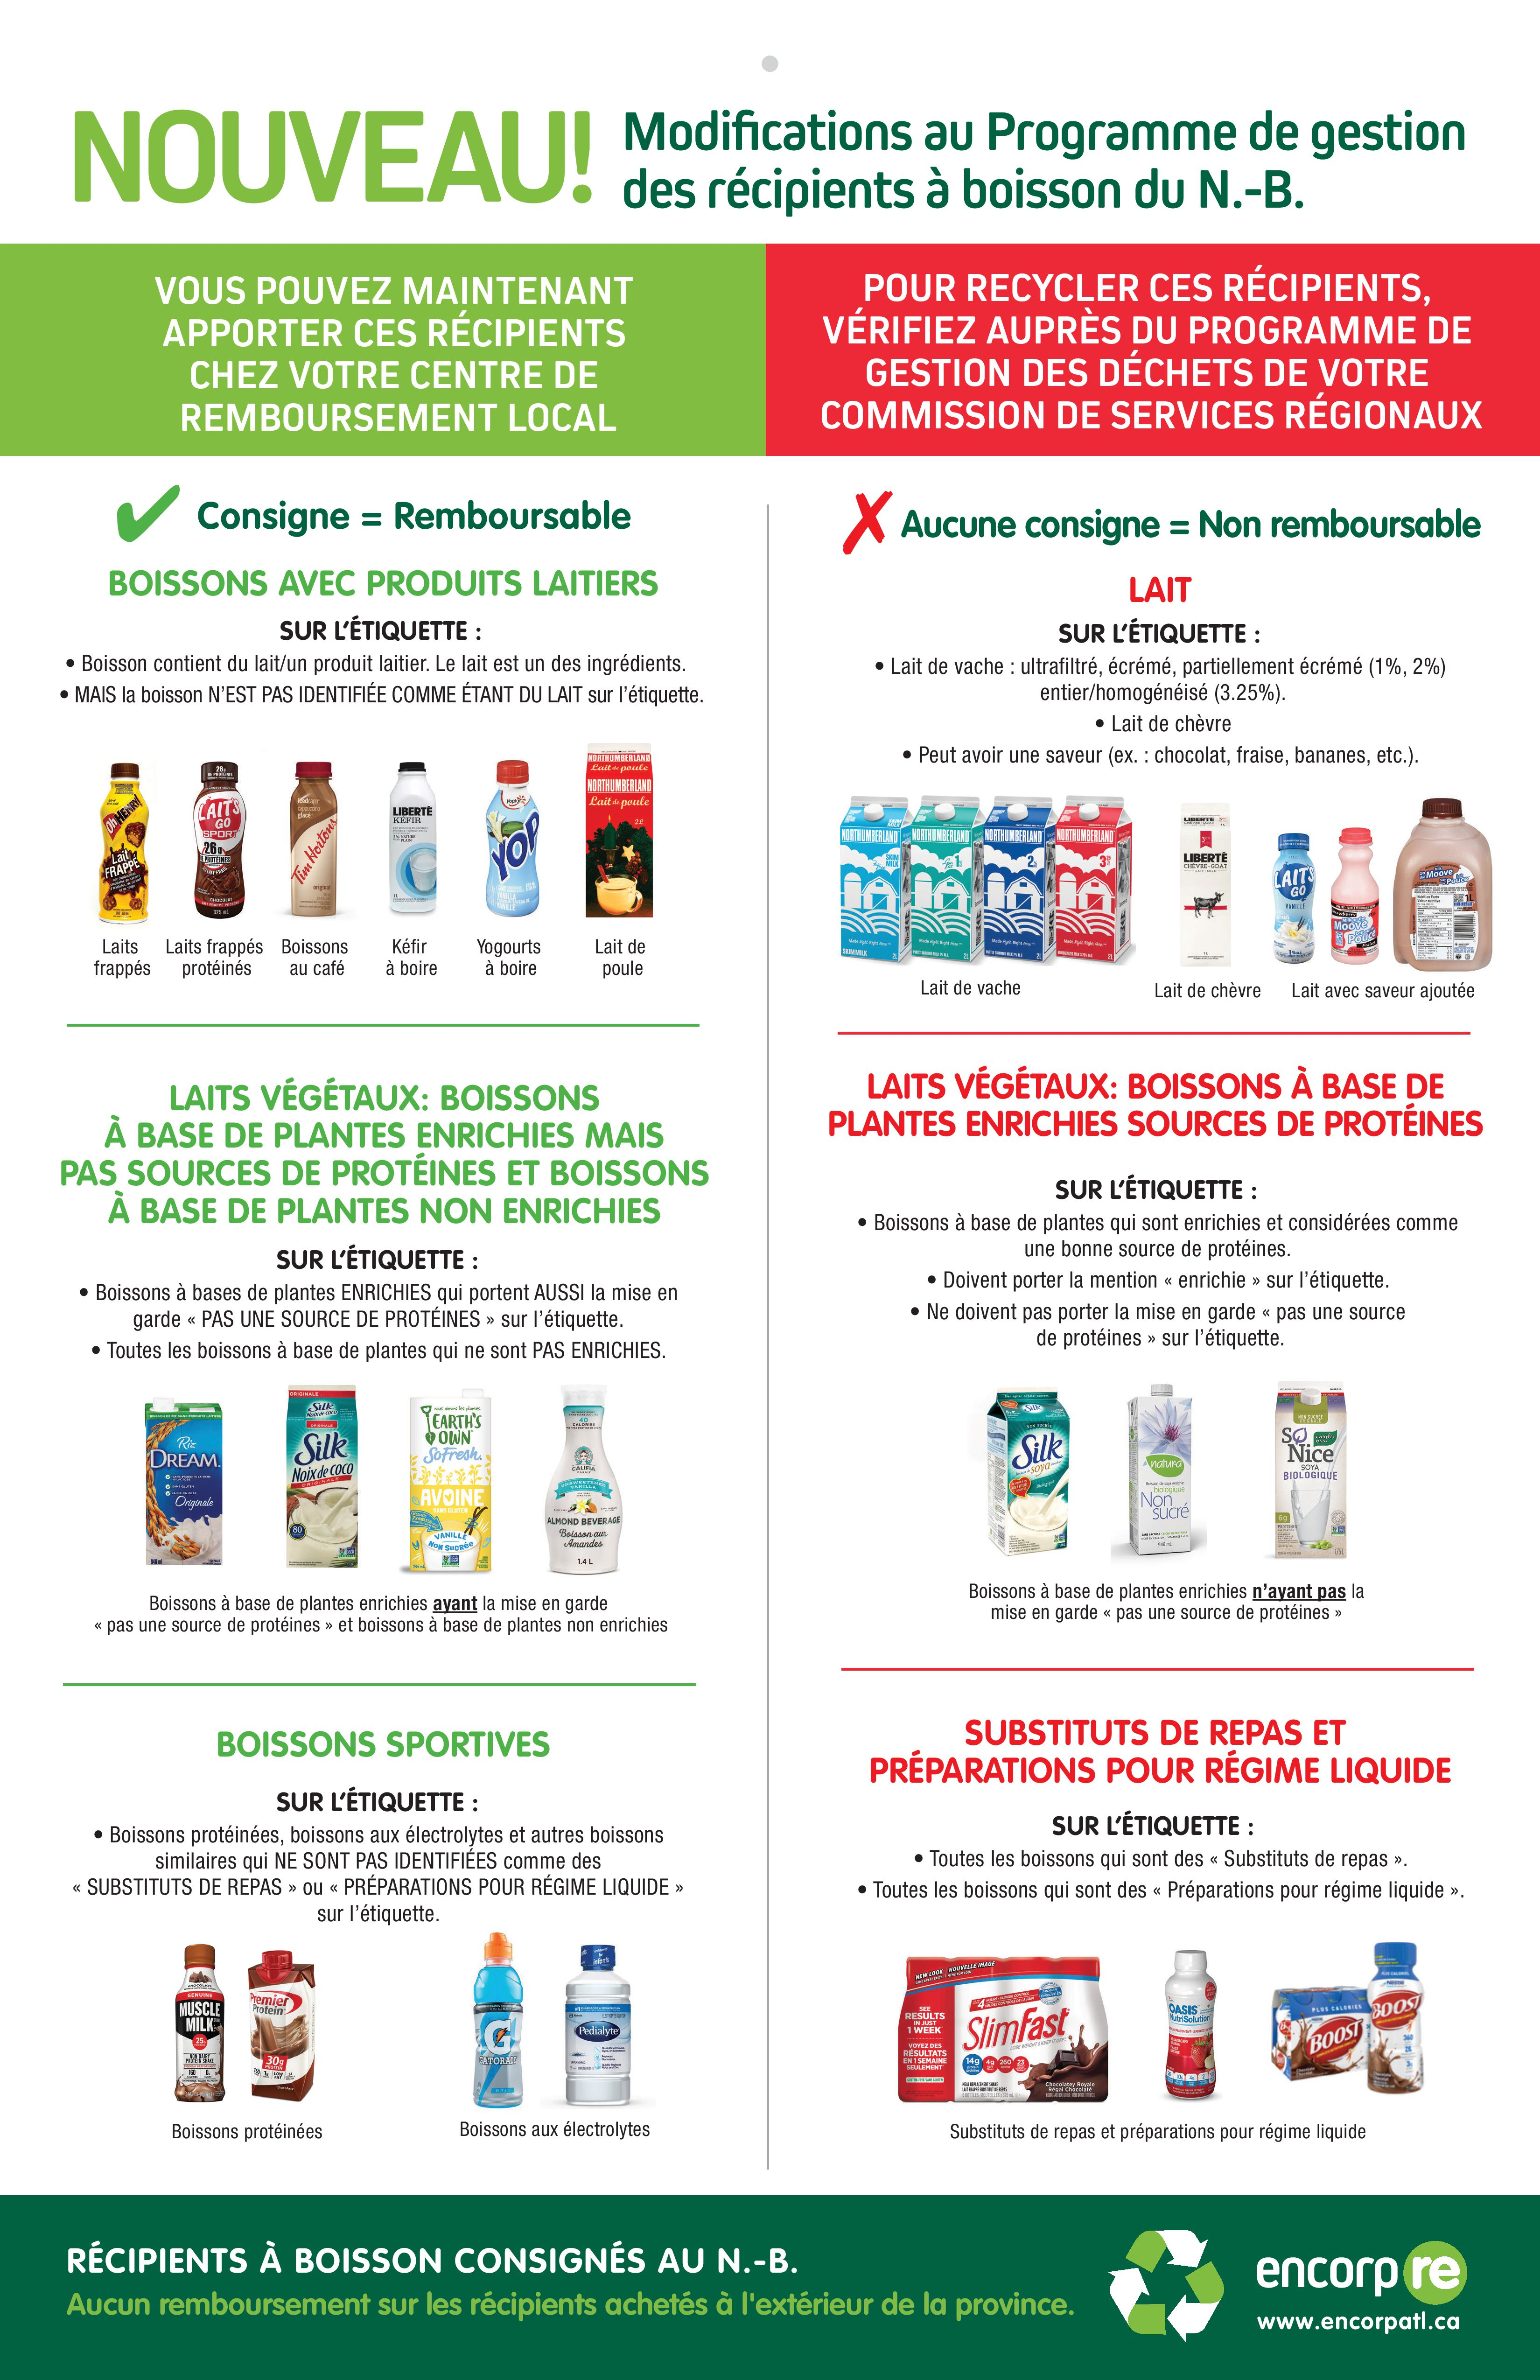 Click on this link to enlarge: https://encorpatl.ca/wp-content/uploads/2020/08/NewBeverageContainers-E.pdf